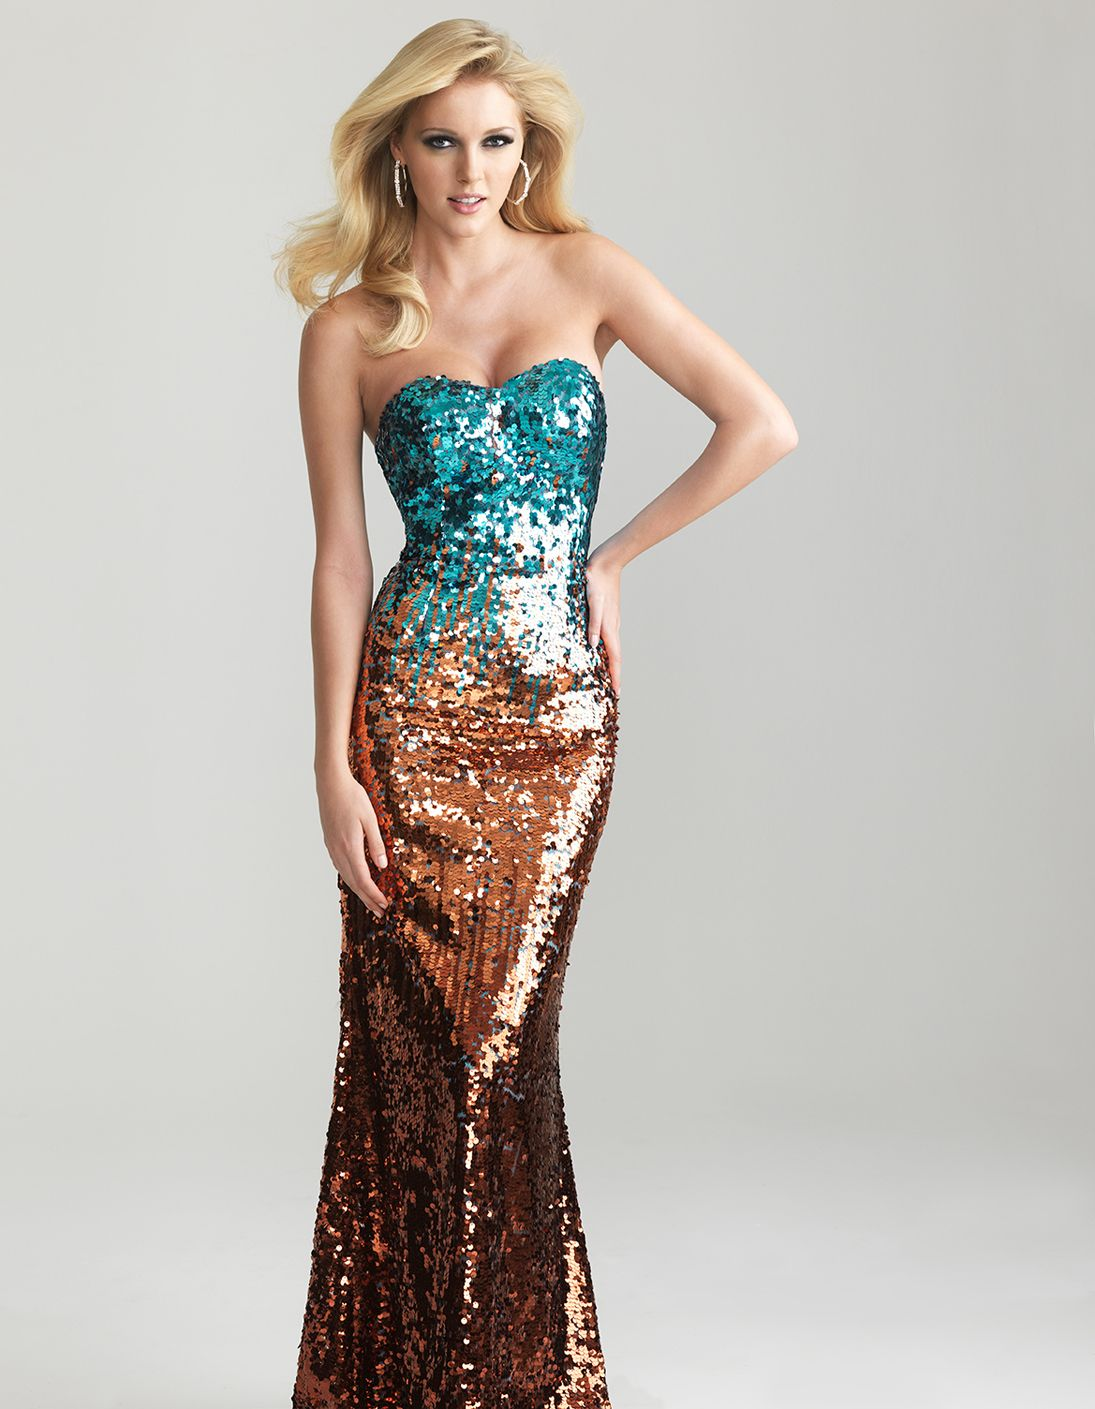 Orange and black sequin dress